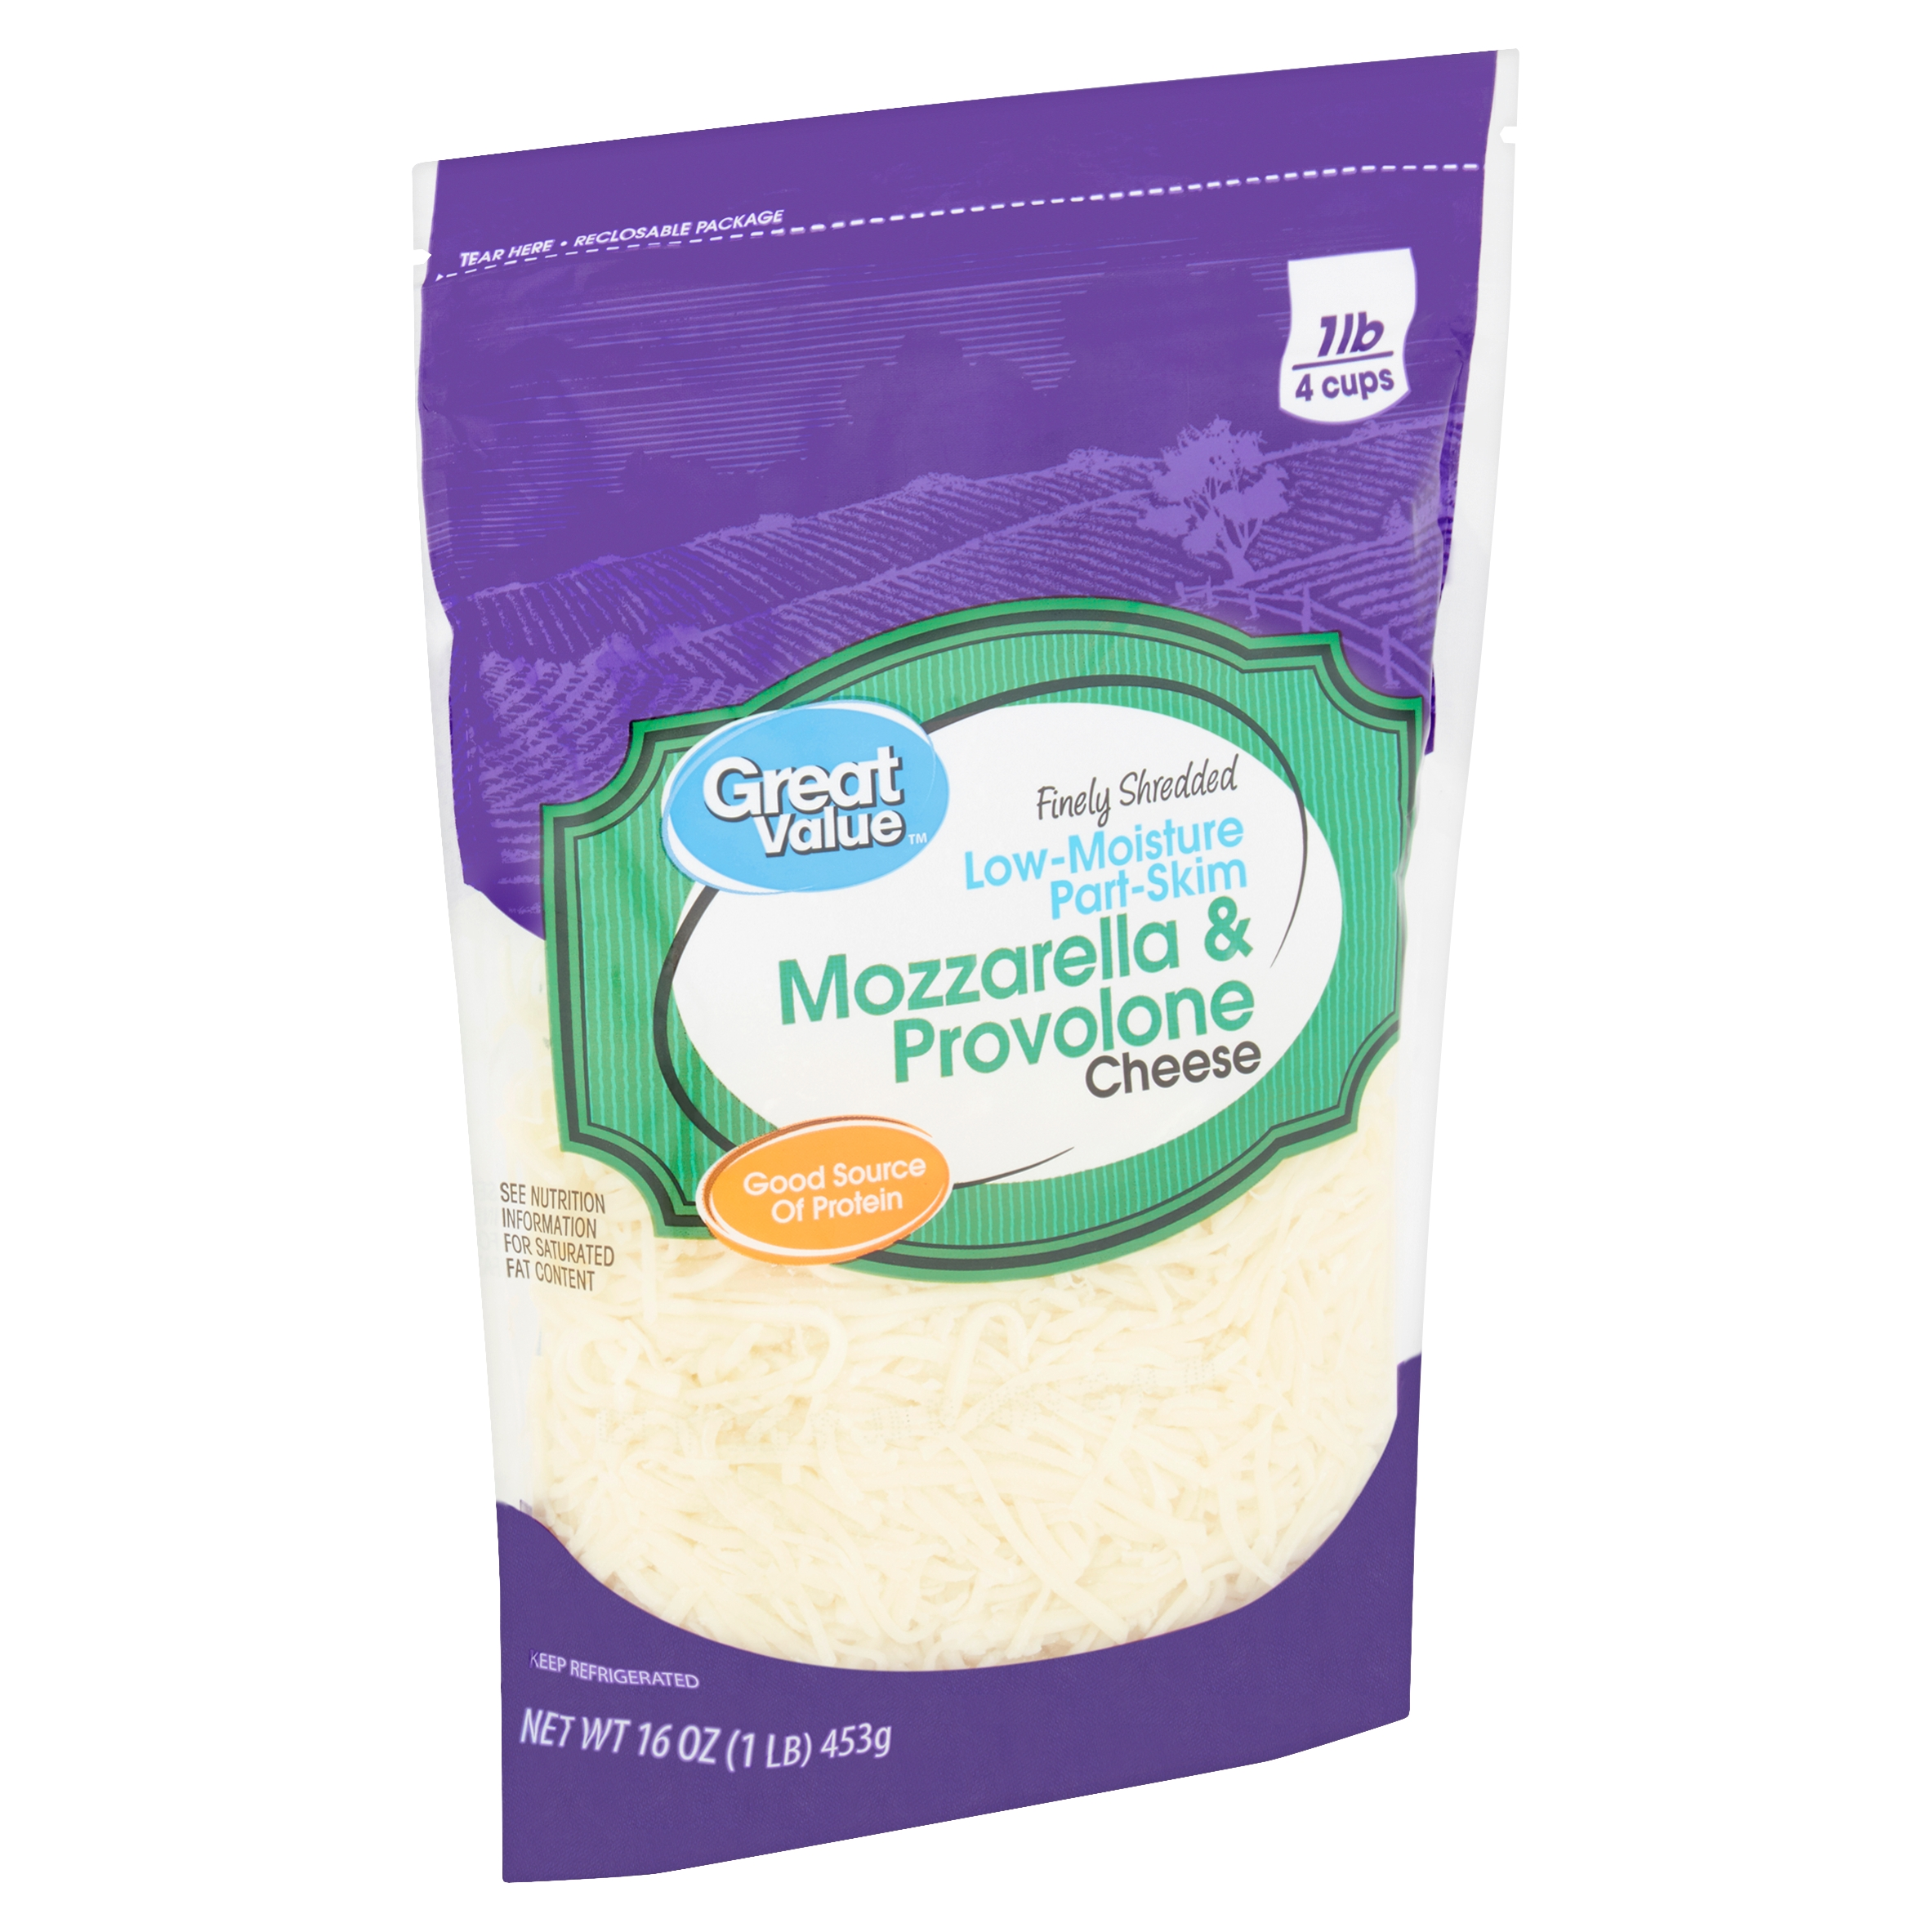 Great Value Finely Shredded Low-Moisture Part-Skim Mozzarella & Provolone Cheese, 16 oz